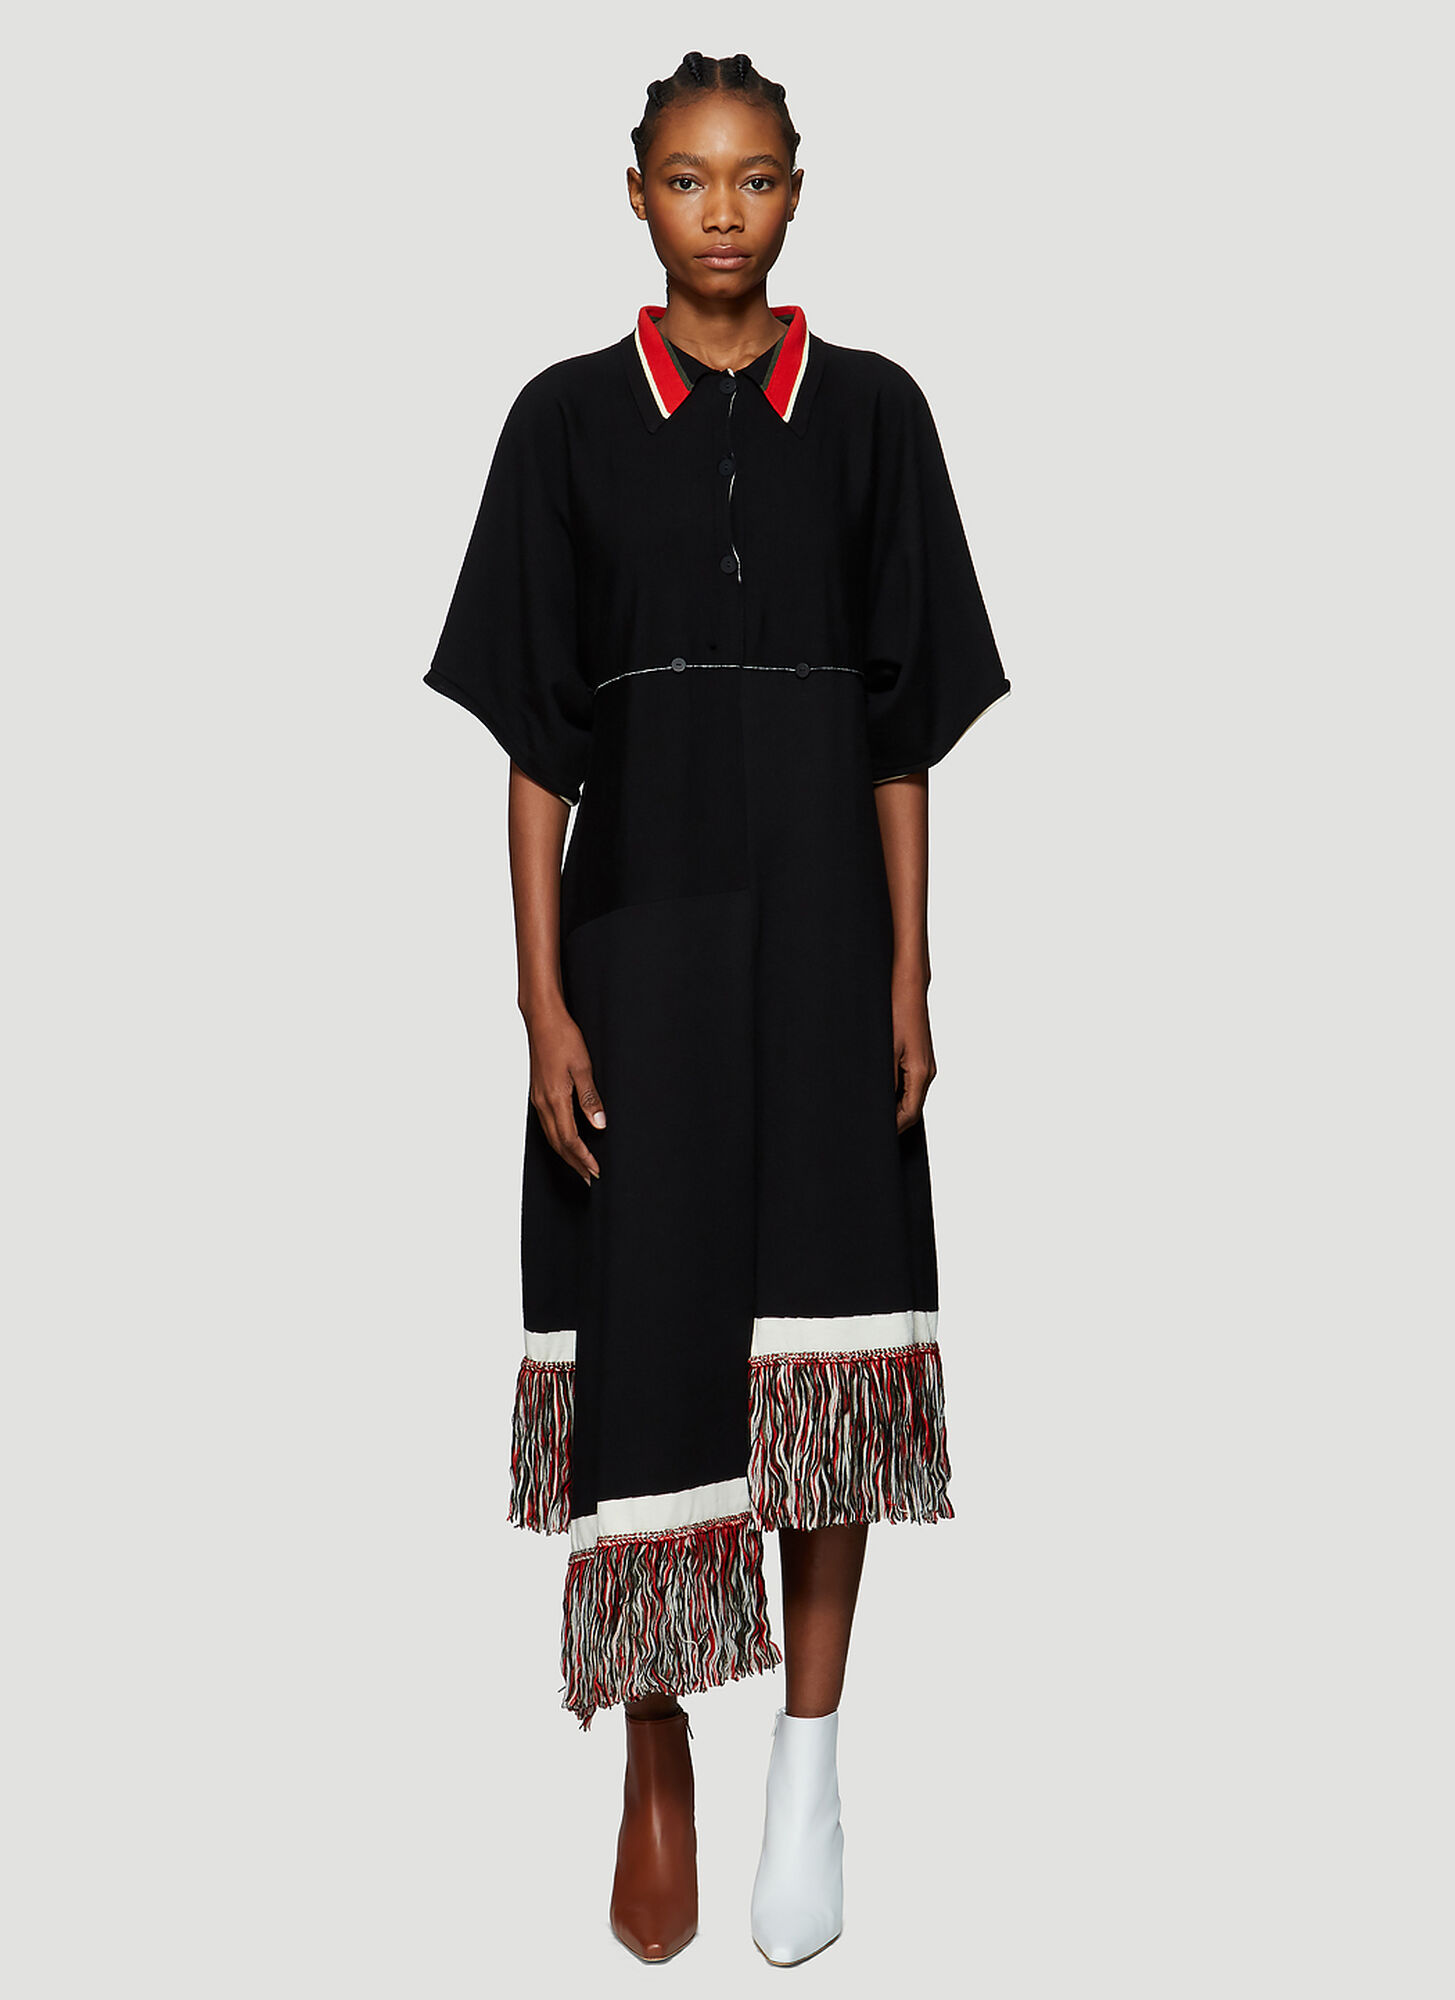 JW Anderson Fringed Hem Knitted Dress in Black